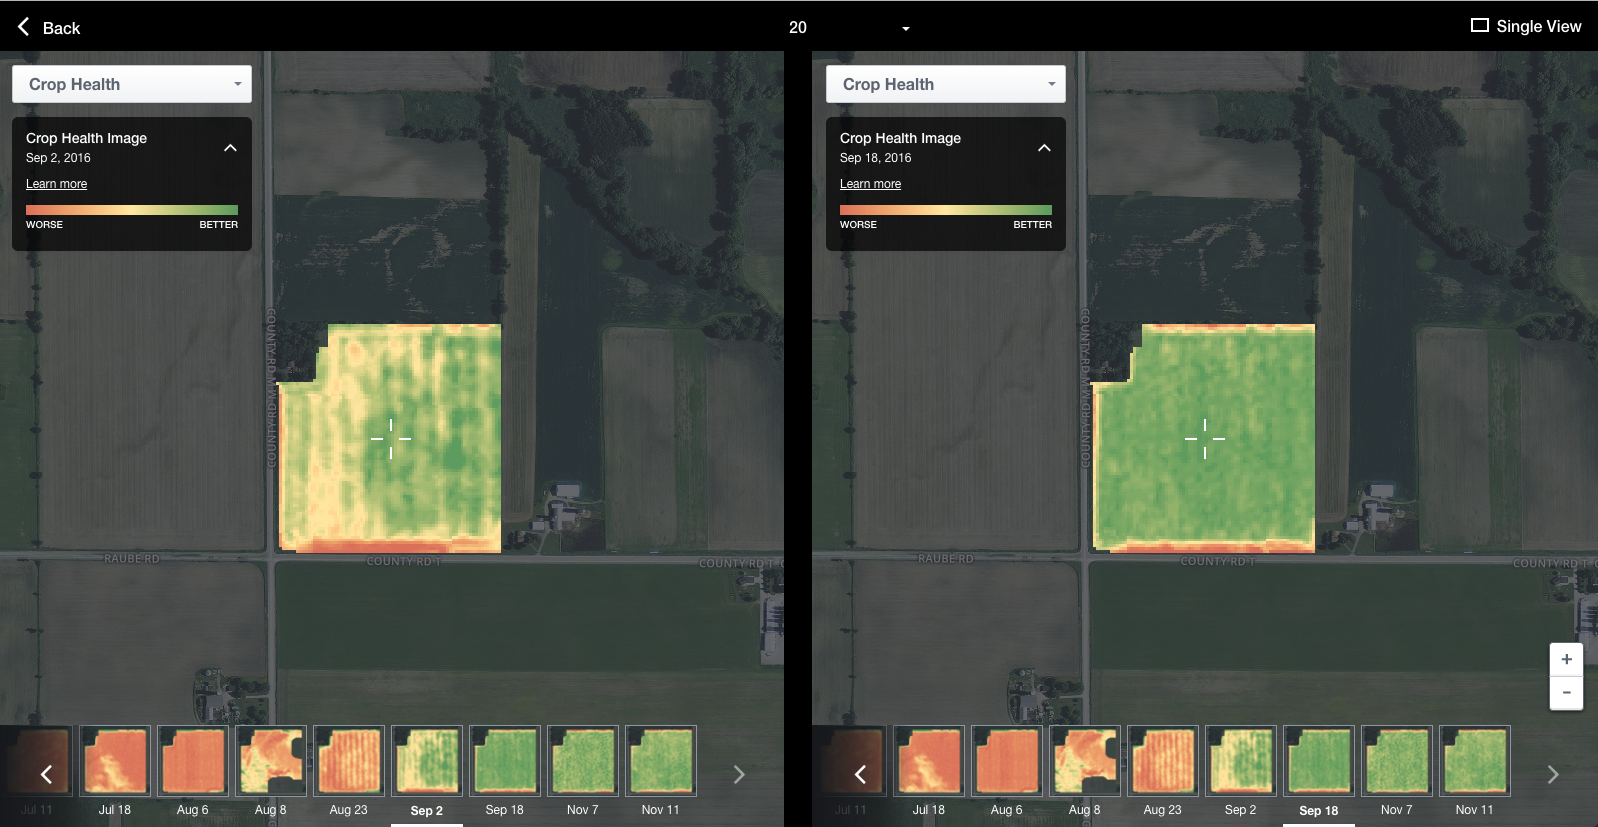 Crop Health Imagery of one of our fields